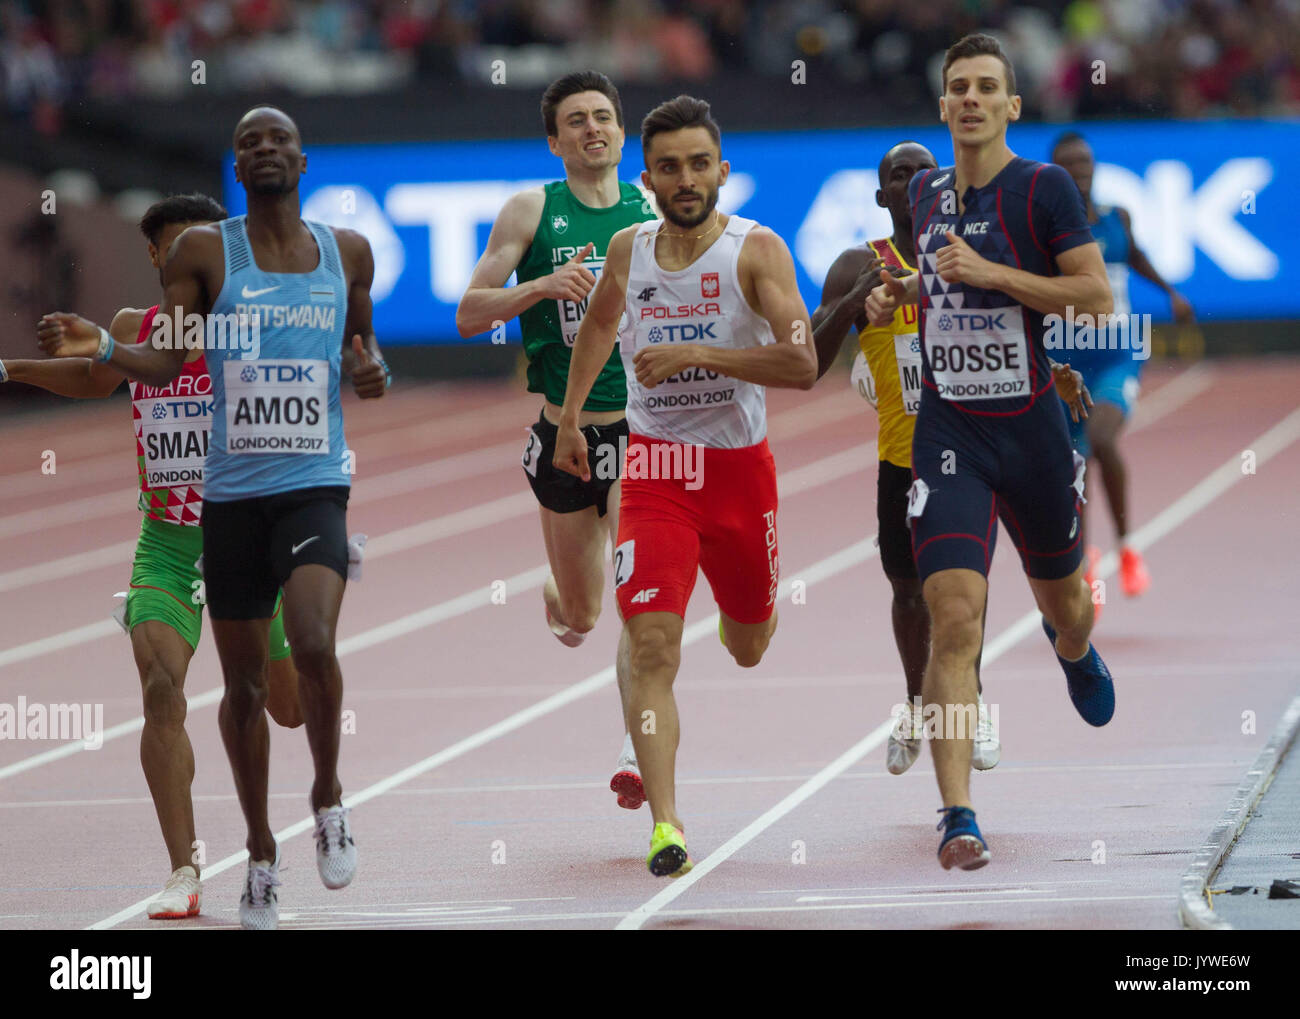 5 August 2017, London Stadium, East London, England; IAAF World Championships, Day2;   Nijel Amos , Adam Kszczot and Pierre Ambroise Bosse 5nd series  - Stock Image